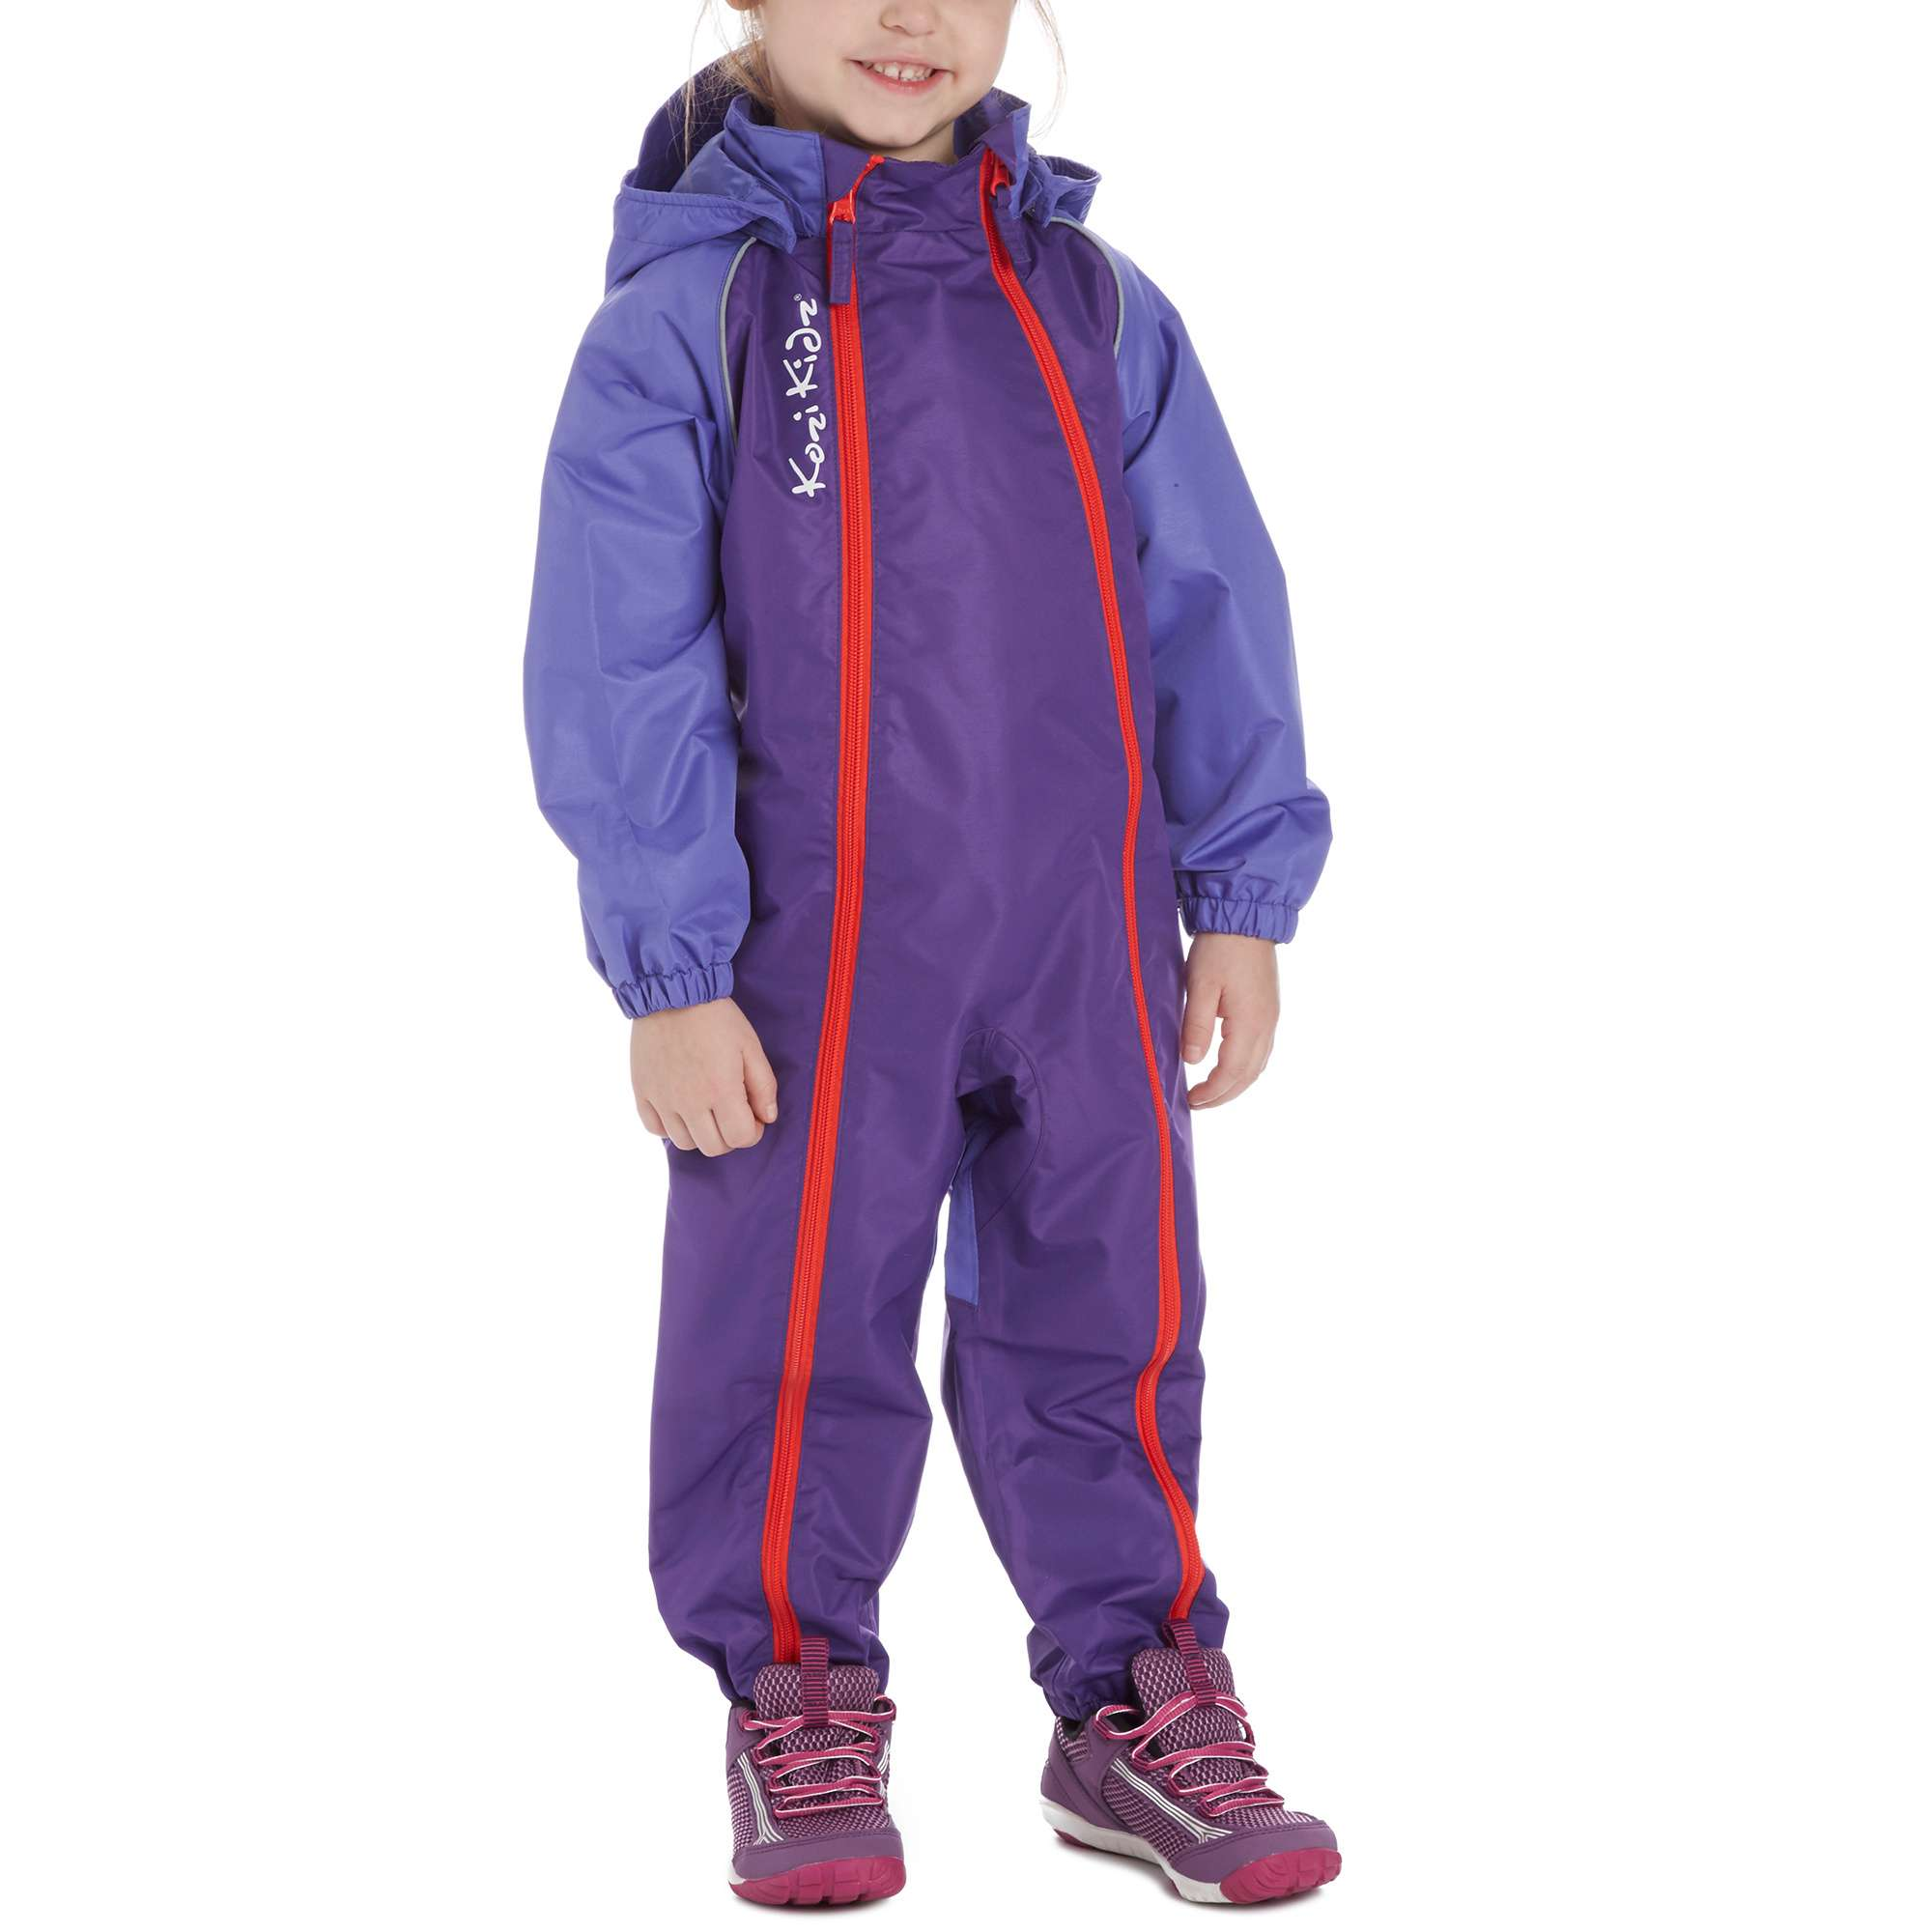 KOZI KIDZ Girls' Waterproof All-in-One Jumpsuit